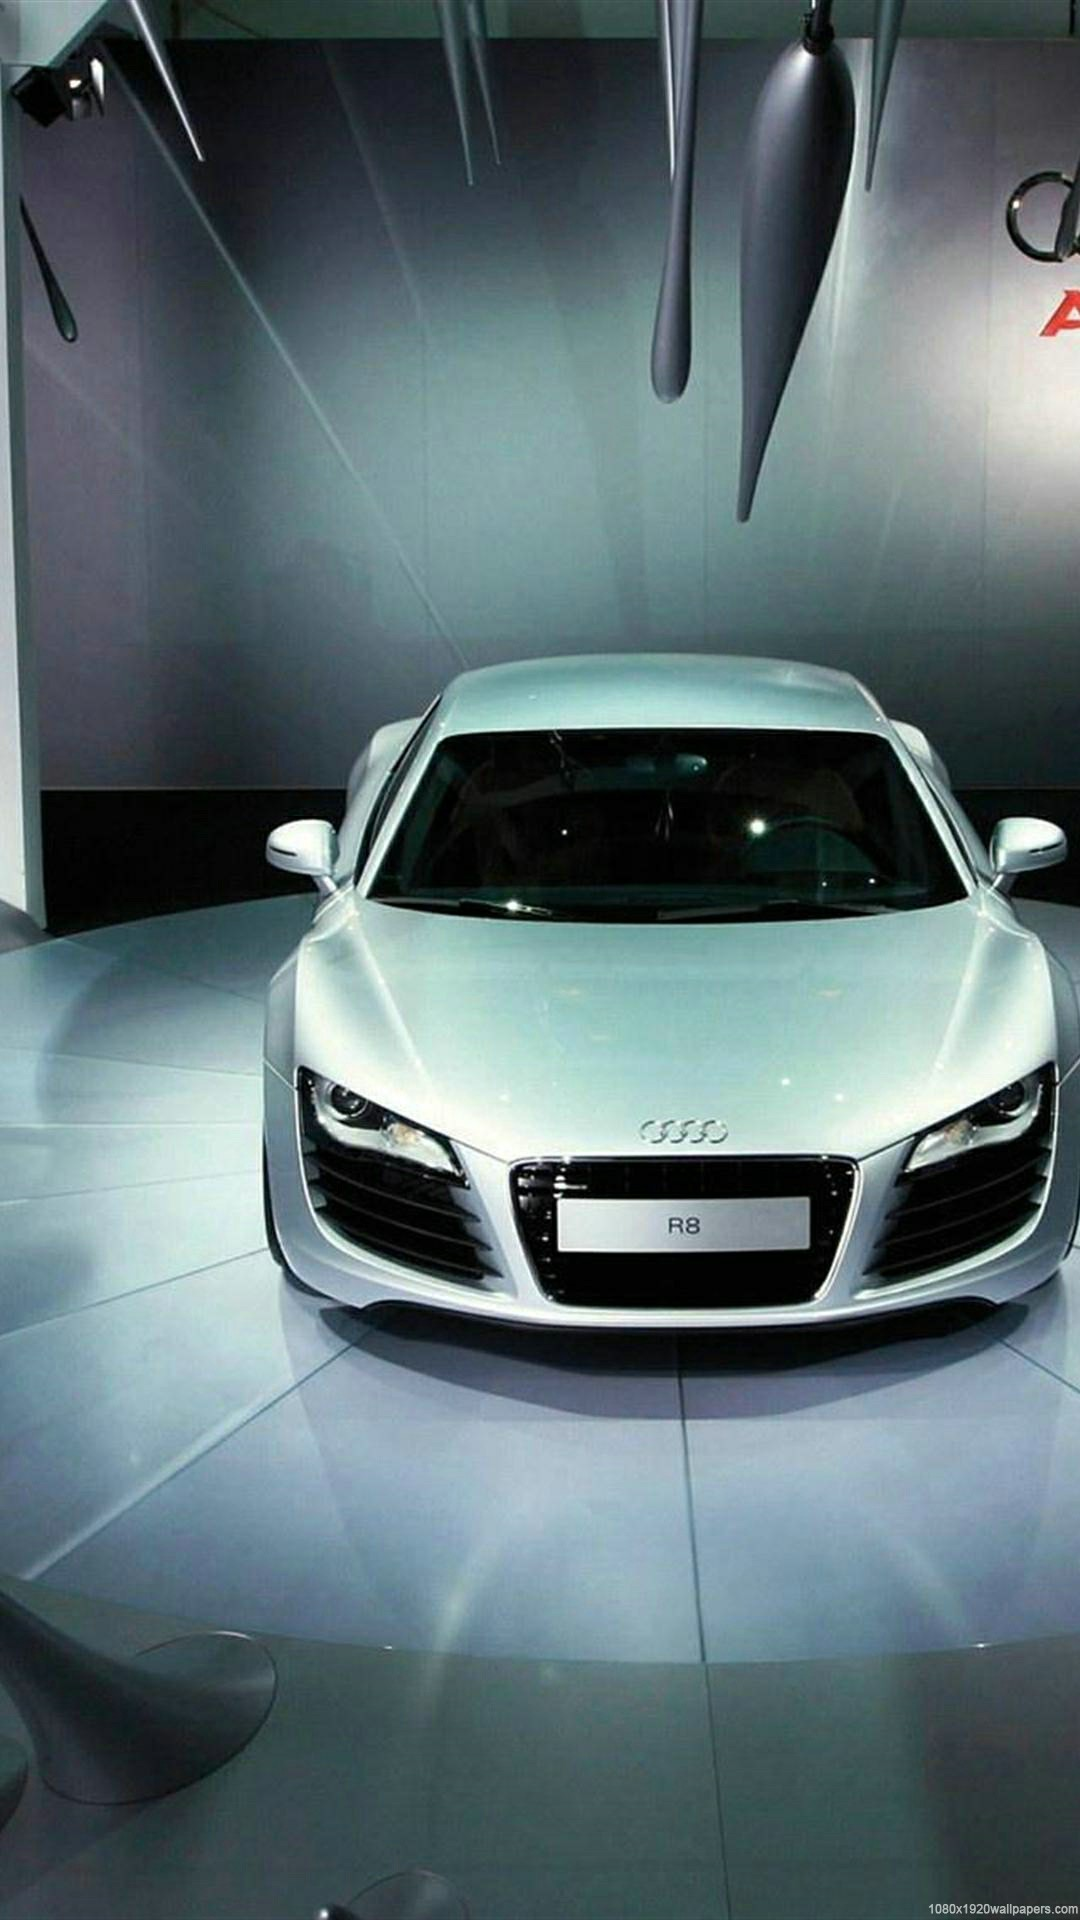 Free Audi Hd Wallpapers Iphone Android Smartphone Download - Hd Wallpapers 1080p Download For Mobile , HD Wallpaper & Backgrounds